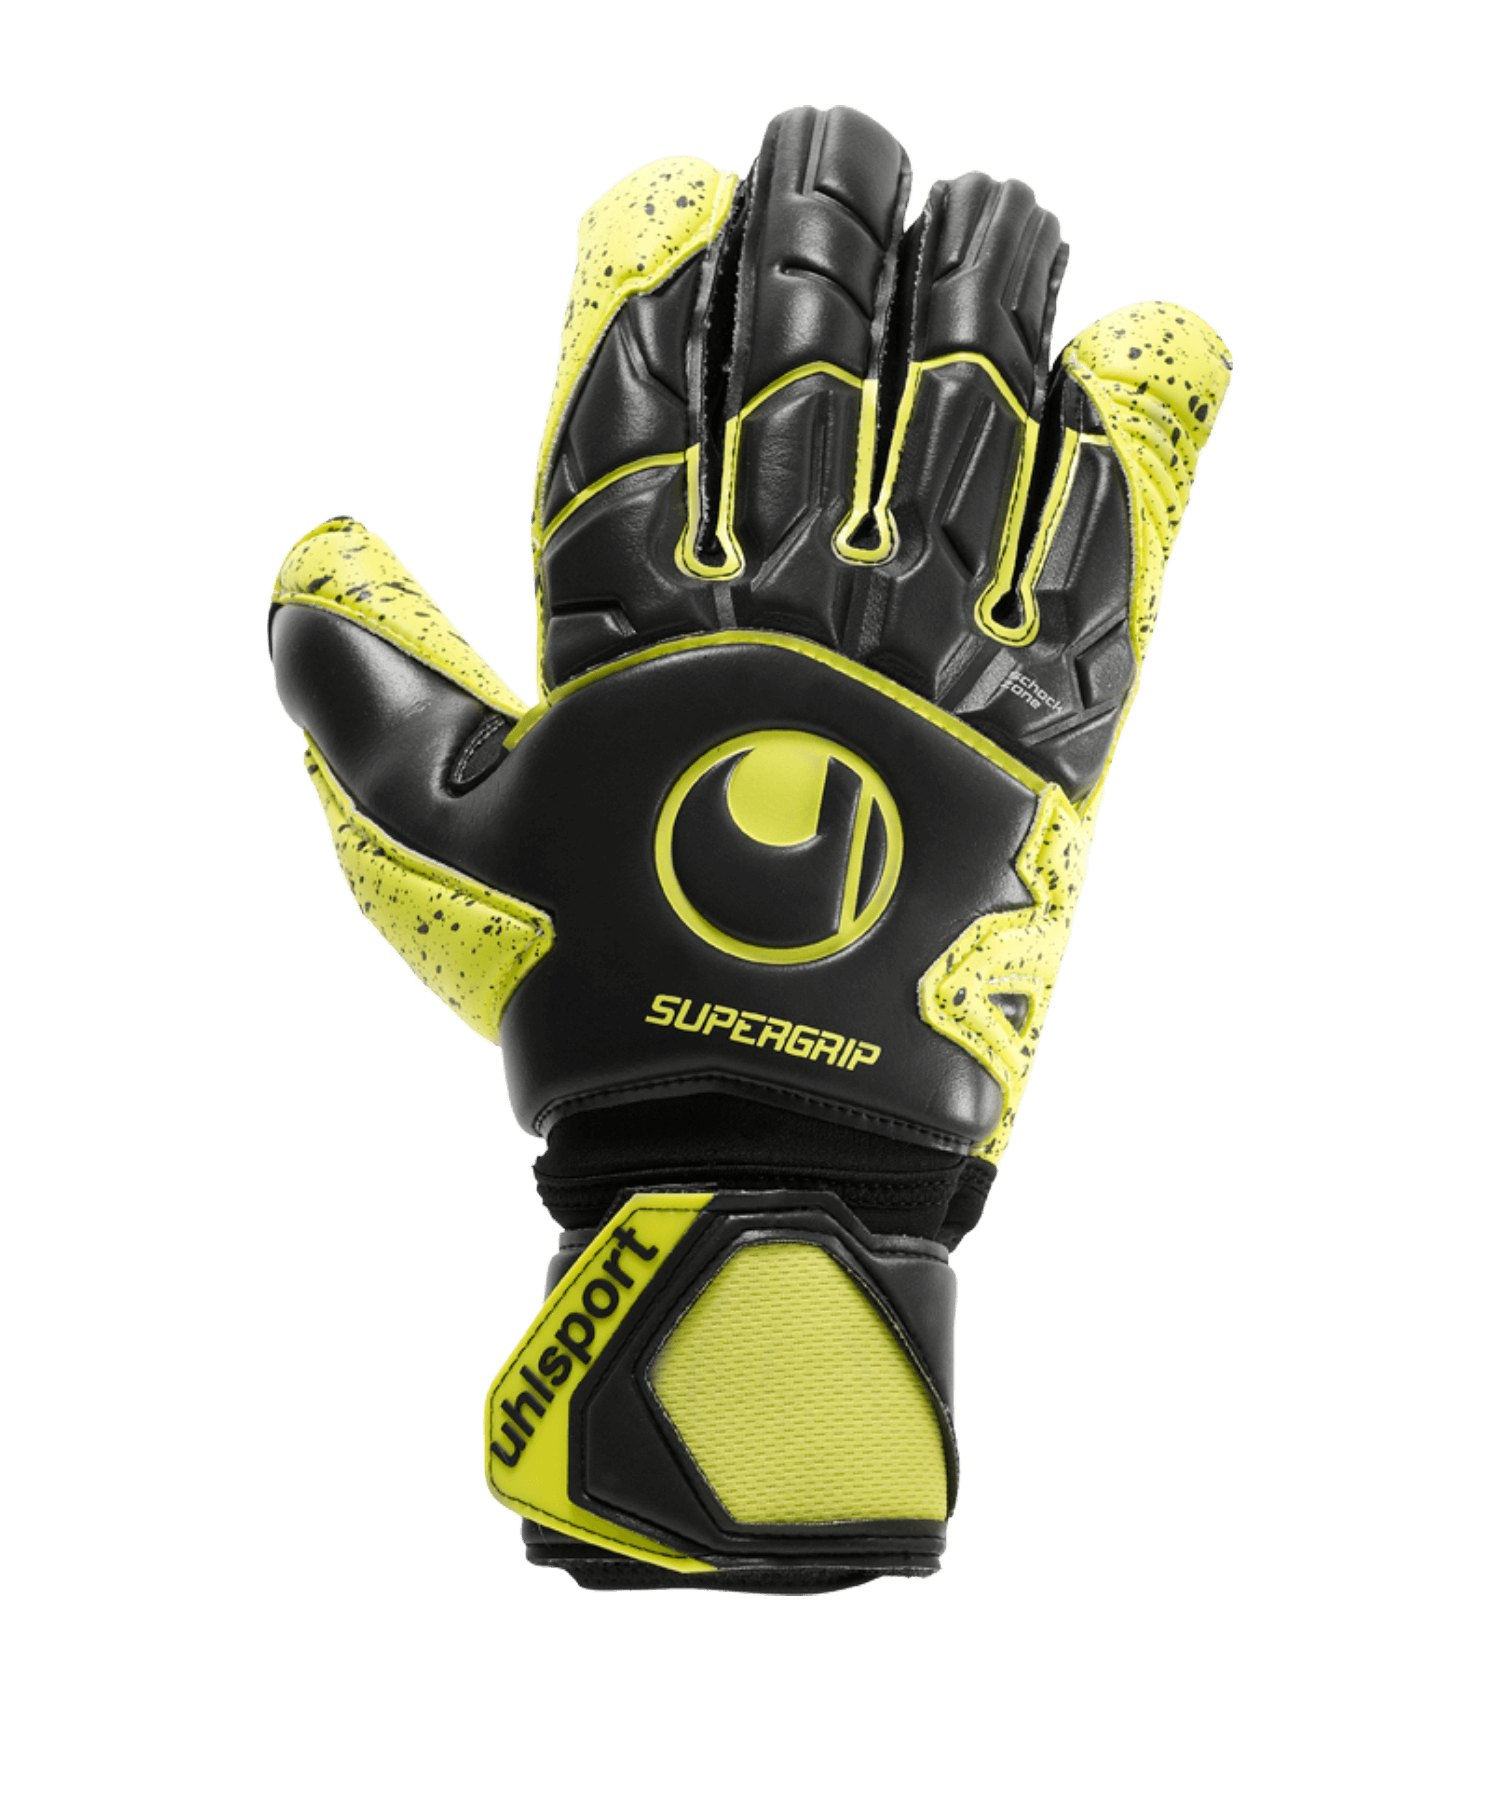 Uhlsport Supergrip Flex Frame Car TW-Handschuh F01 - schwarz